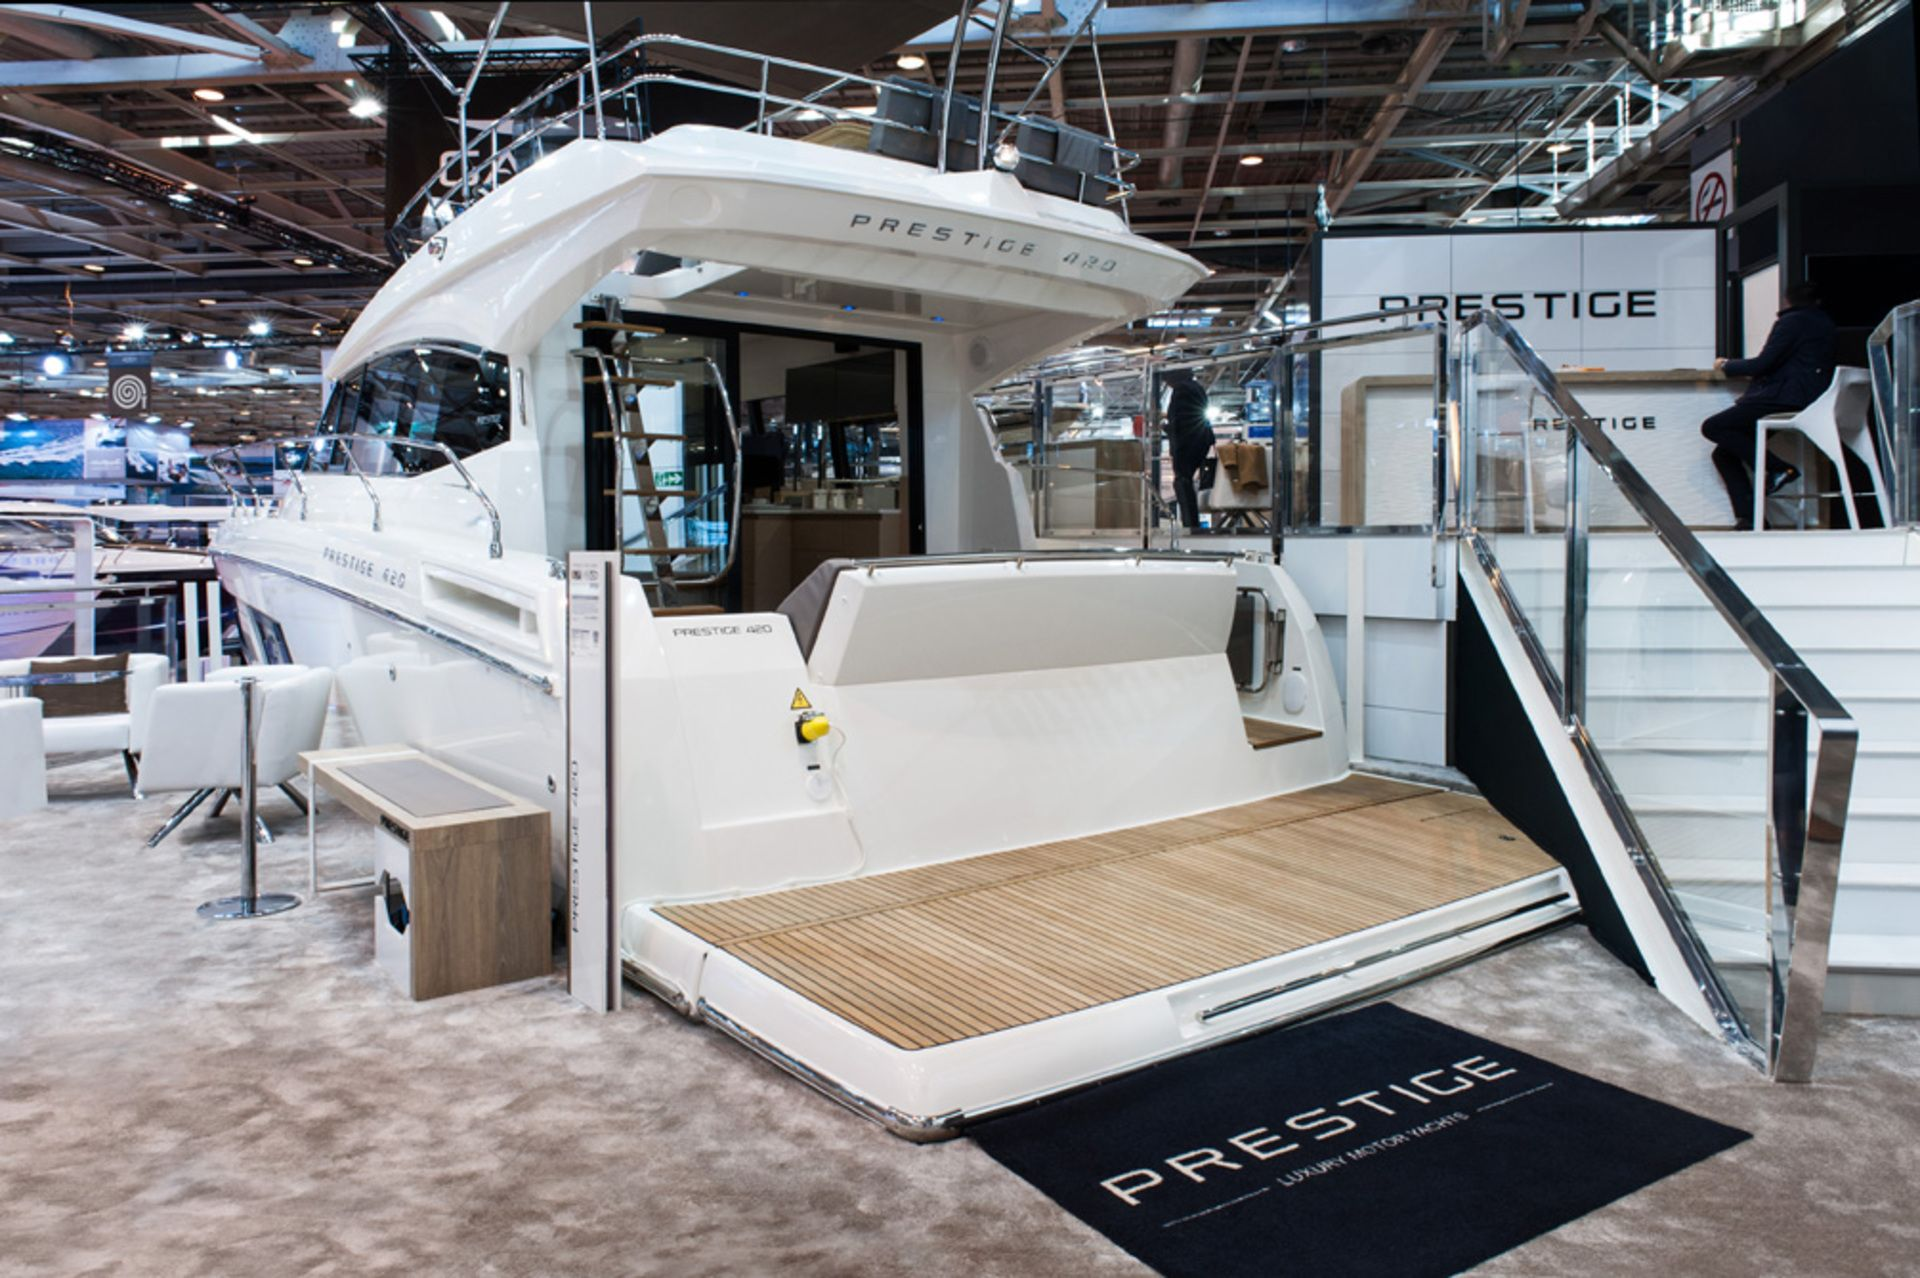 Salon nautique de paris france for Salon nautisme paris